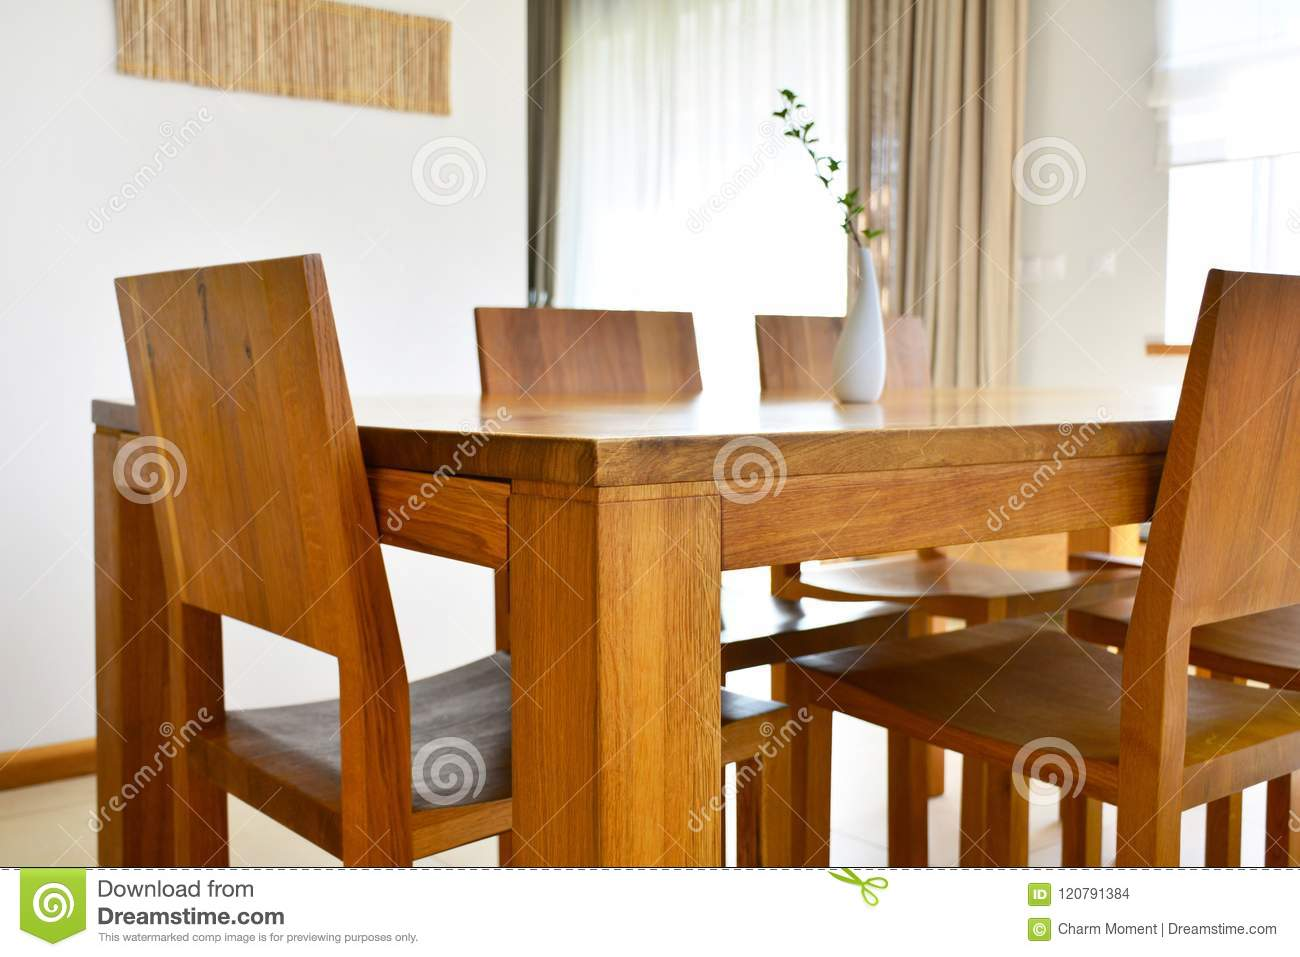 Natural oak wood dining table and chairs in neutral modern inter